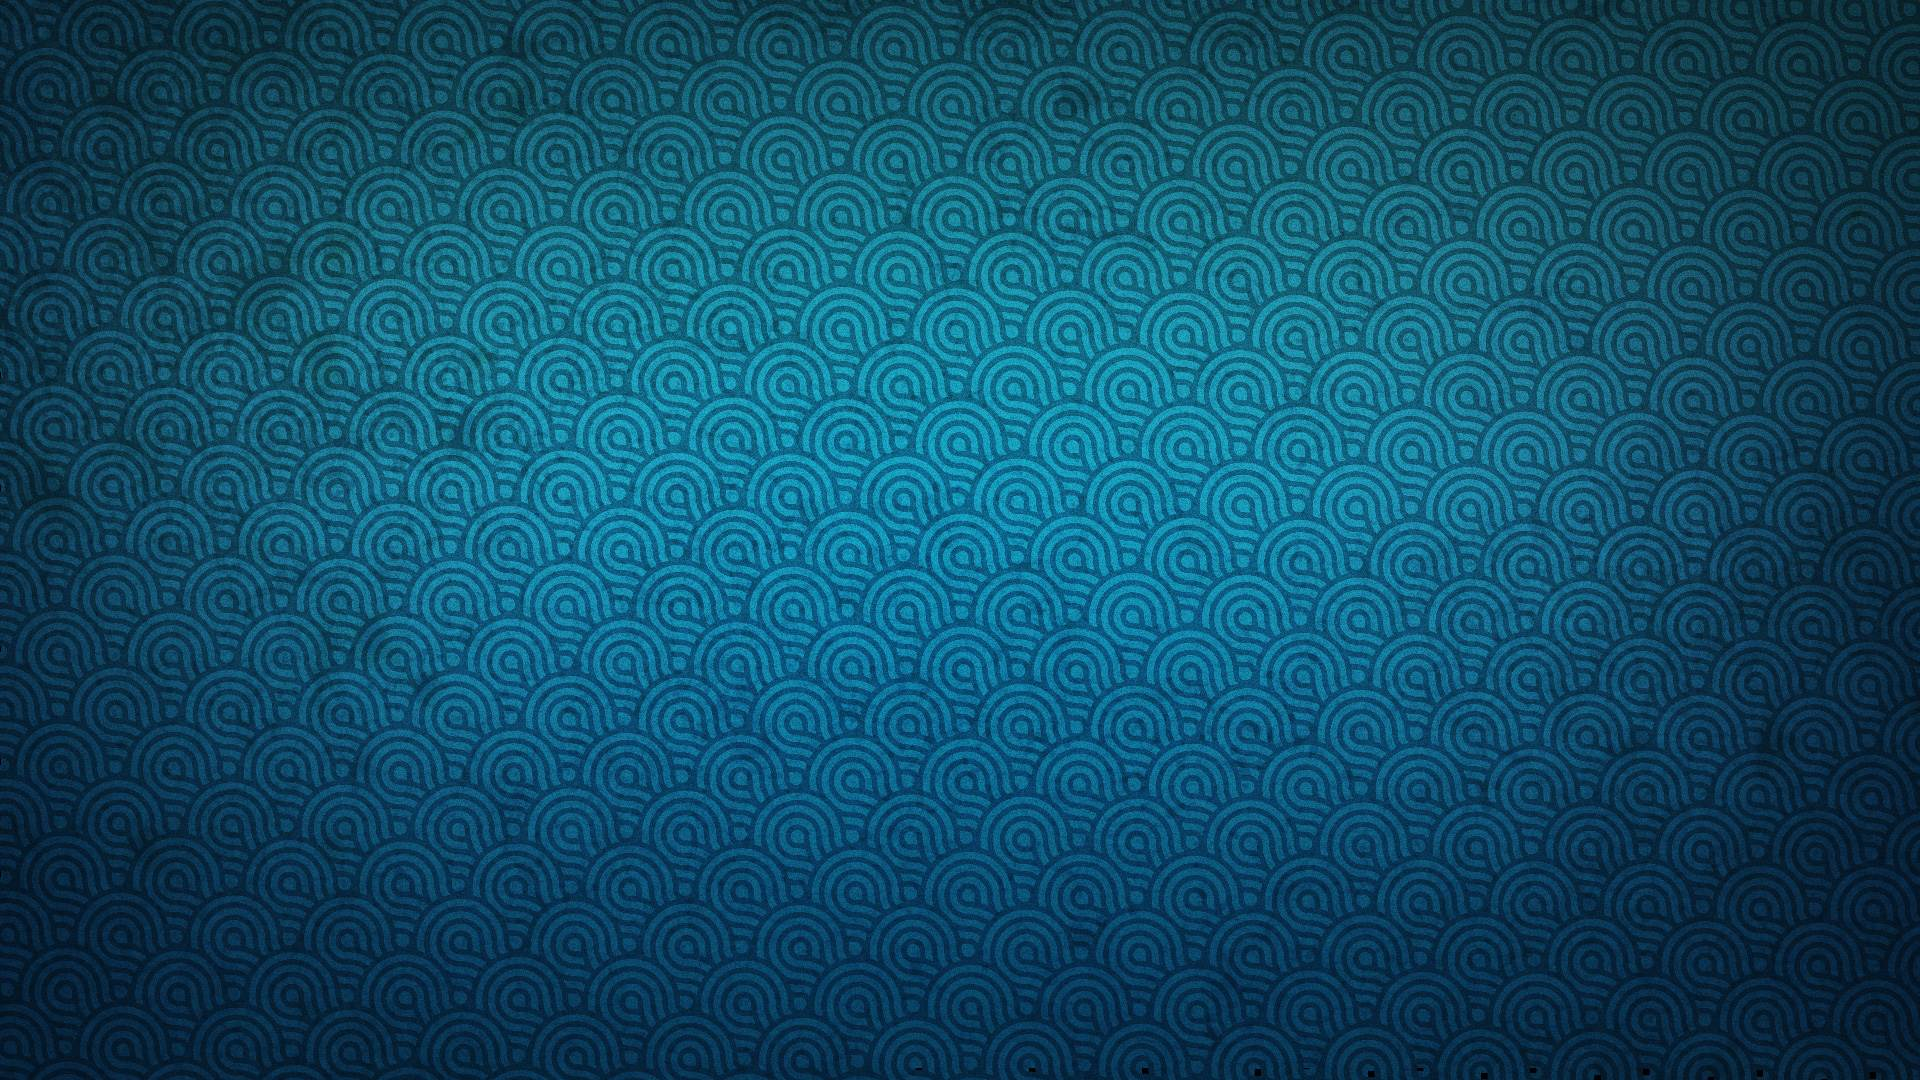 Elegant Background Vectors, Photos and PSD files Free